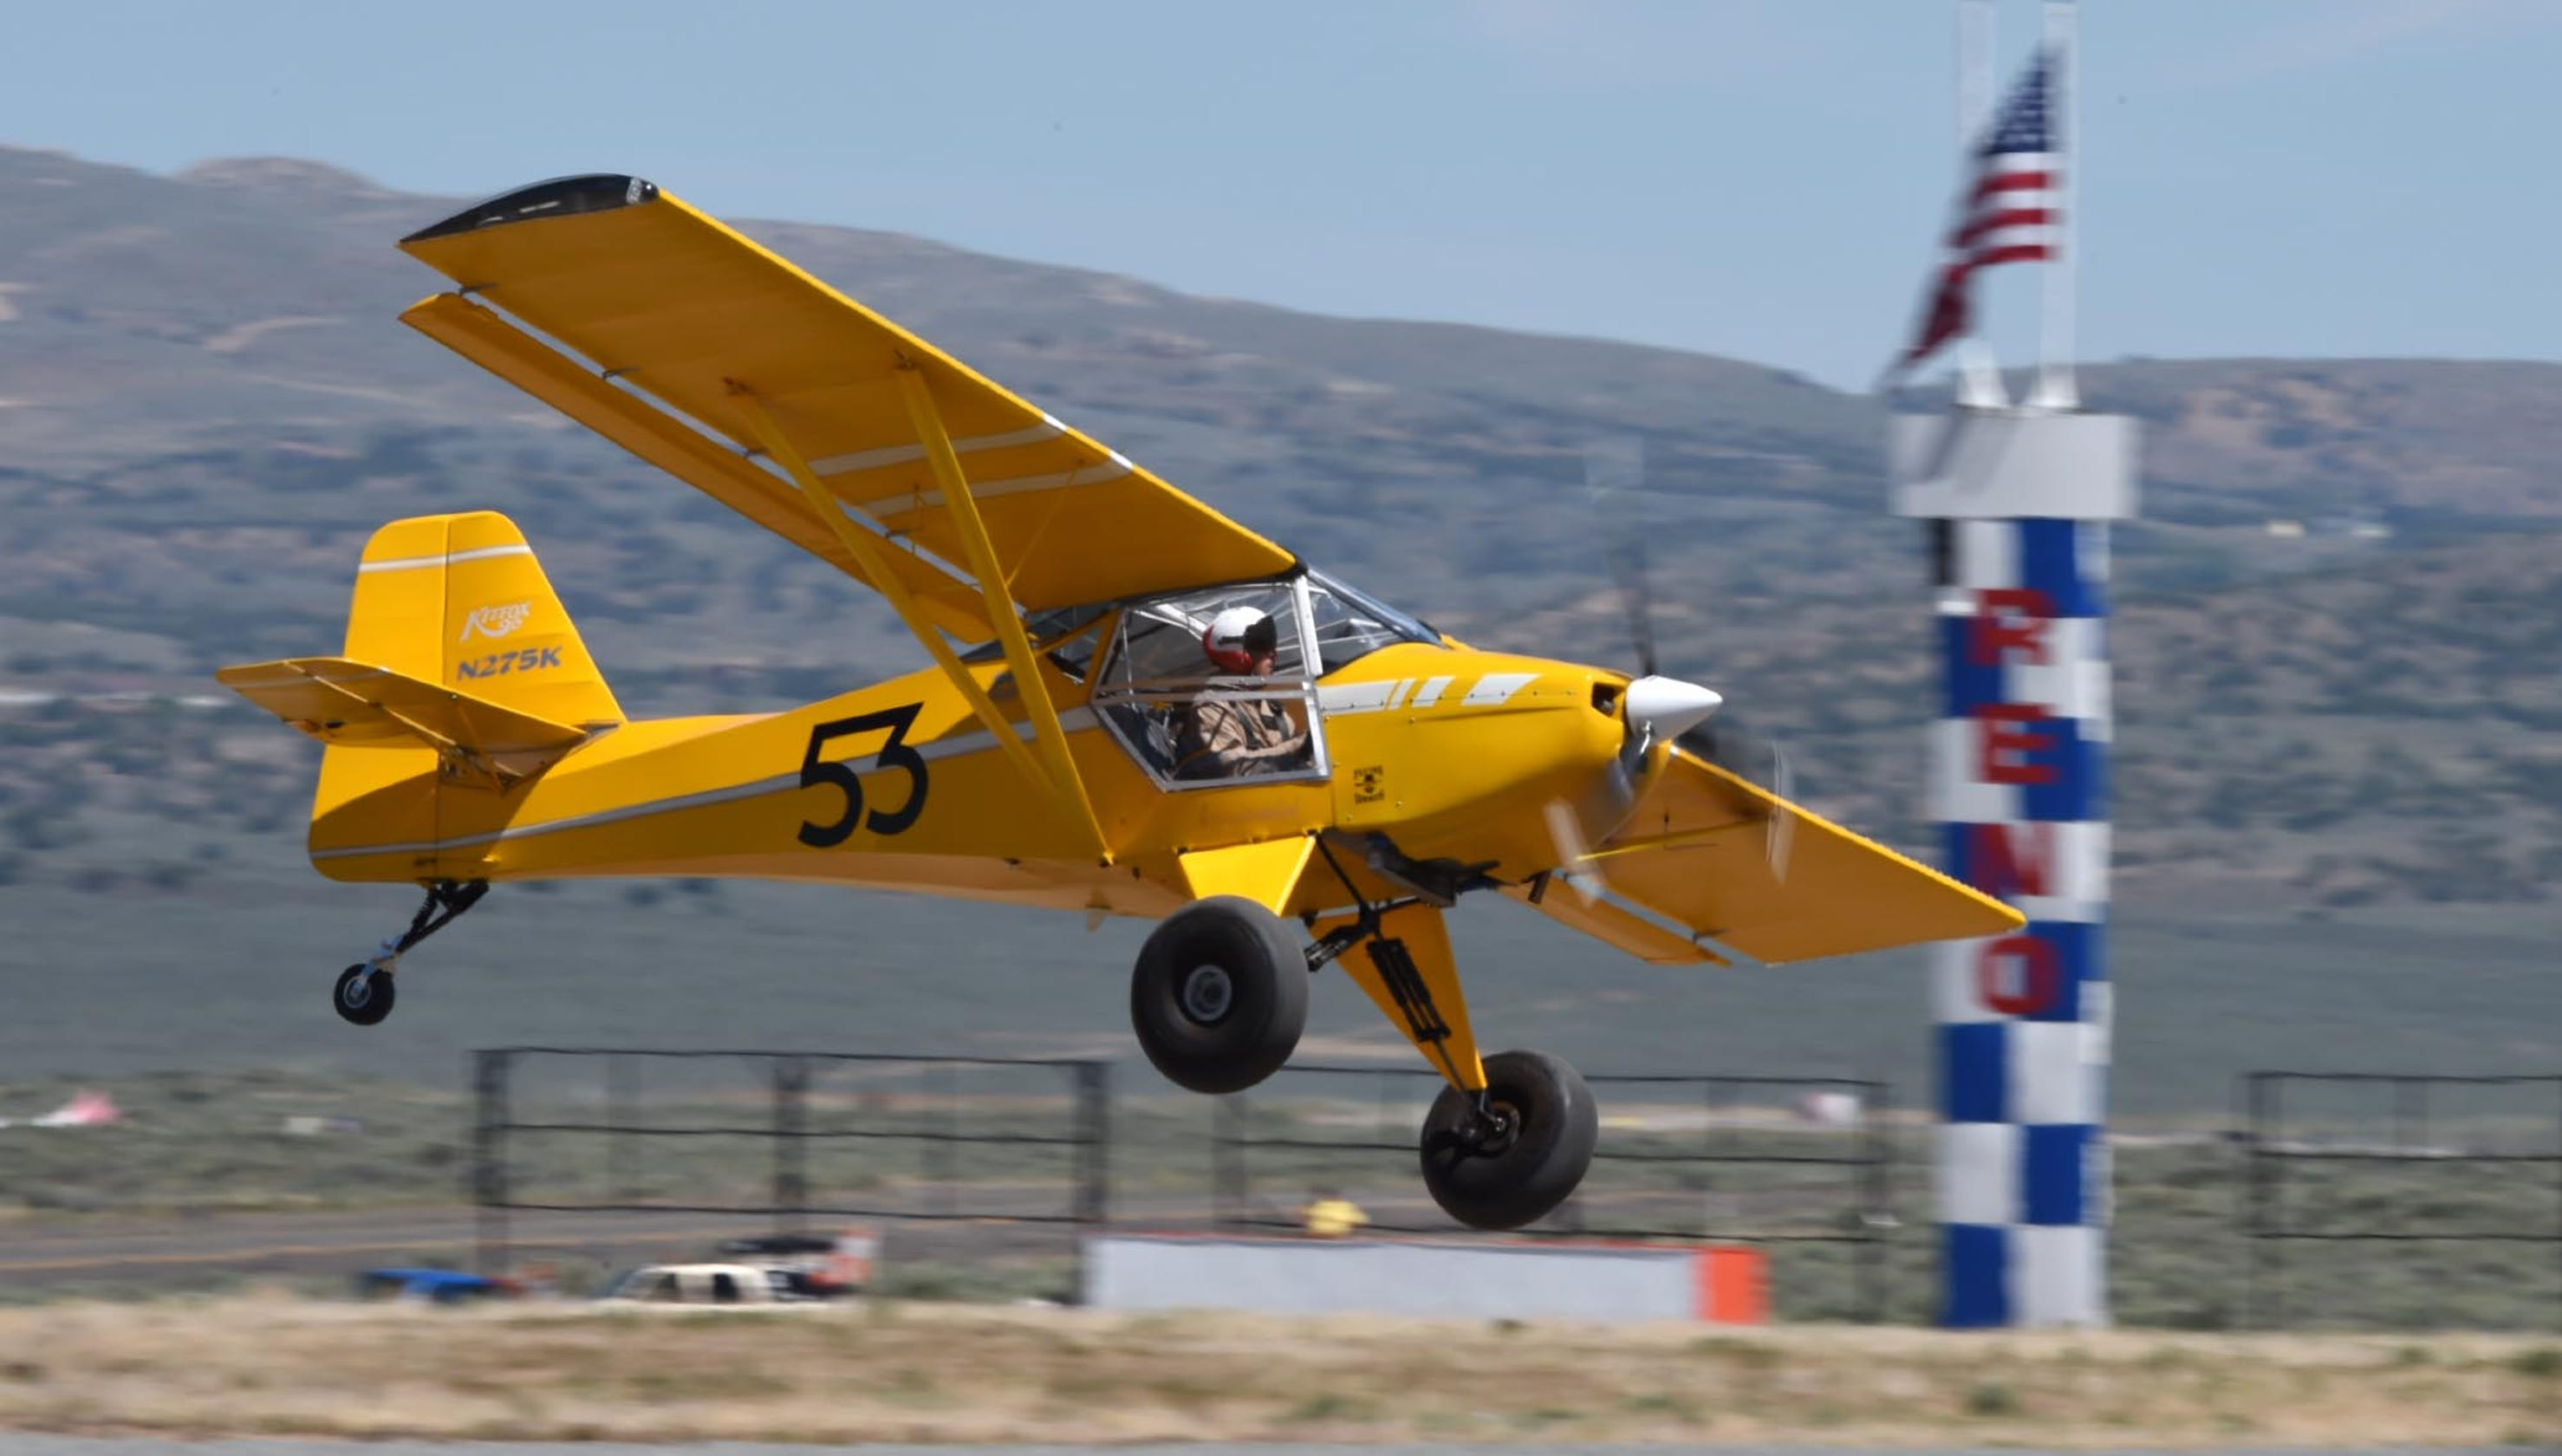 New at the Reno air races this year: Drag racing for planes